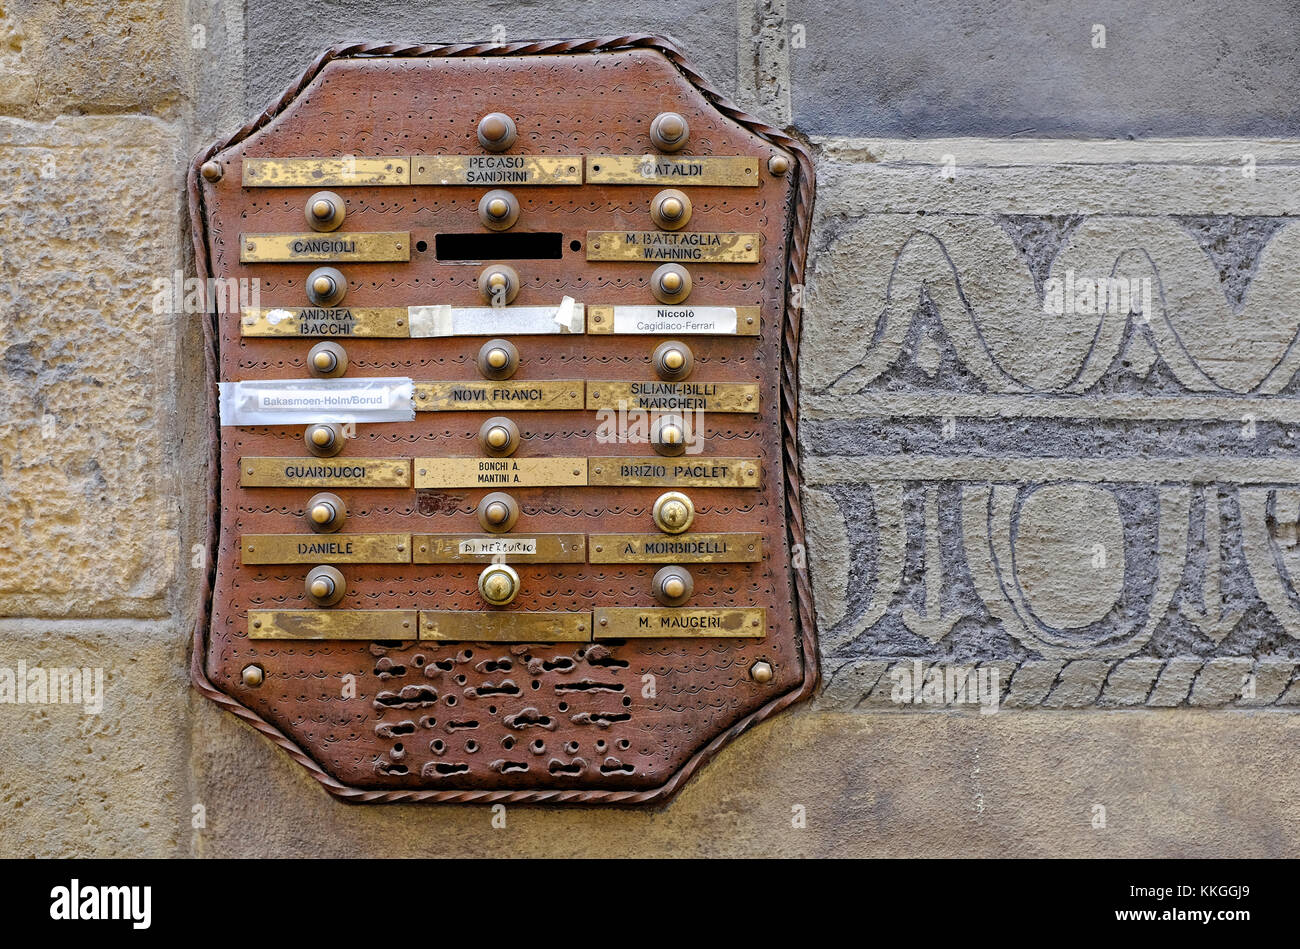 old entrance buzzer system on apartment building wall, florence, italy - Stock Image